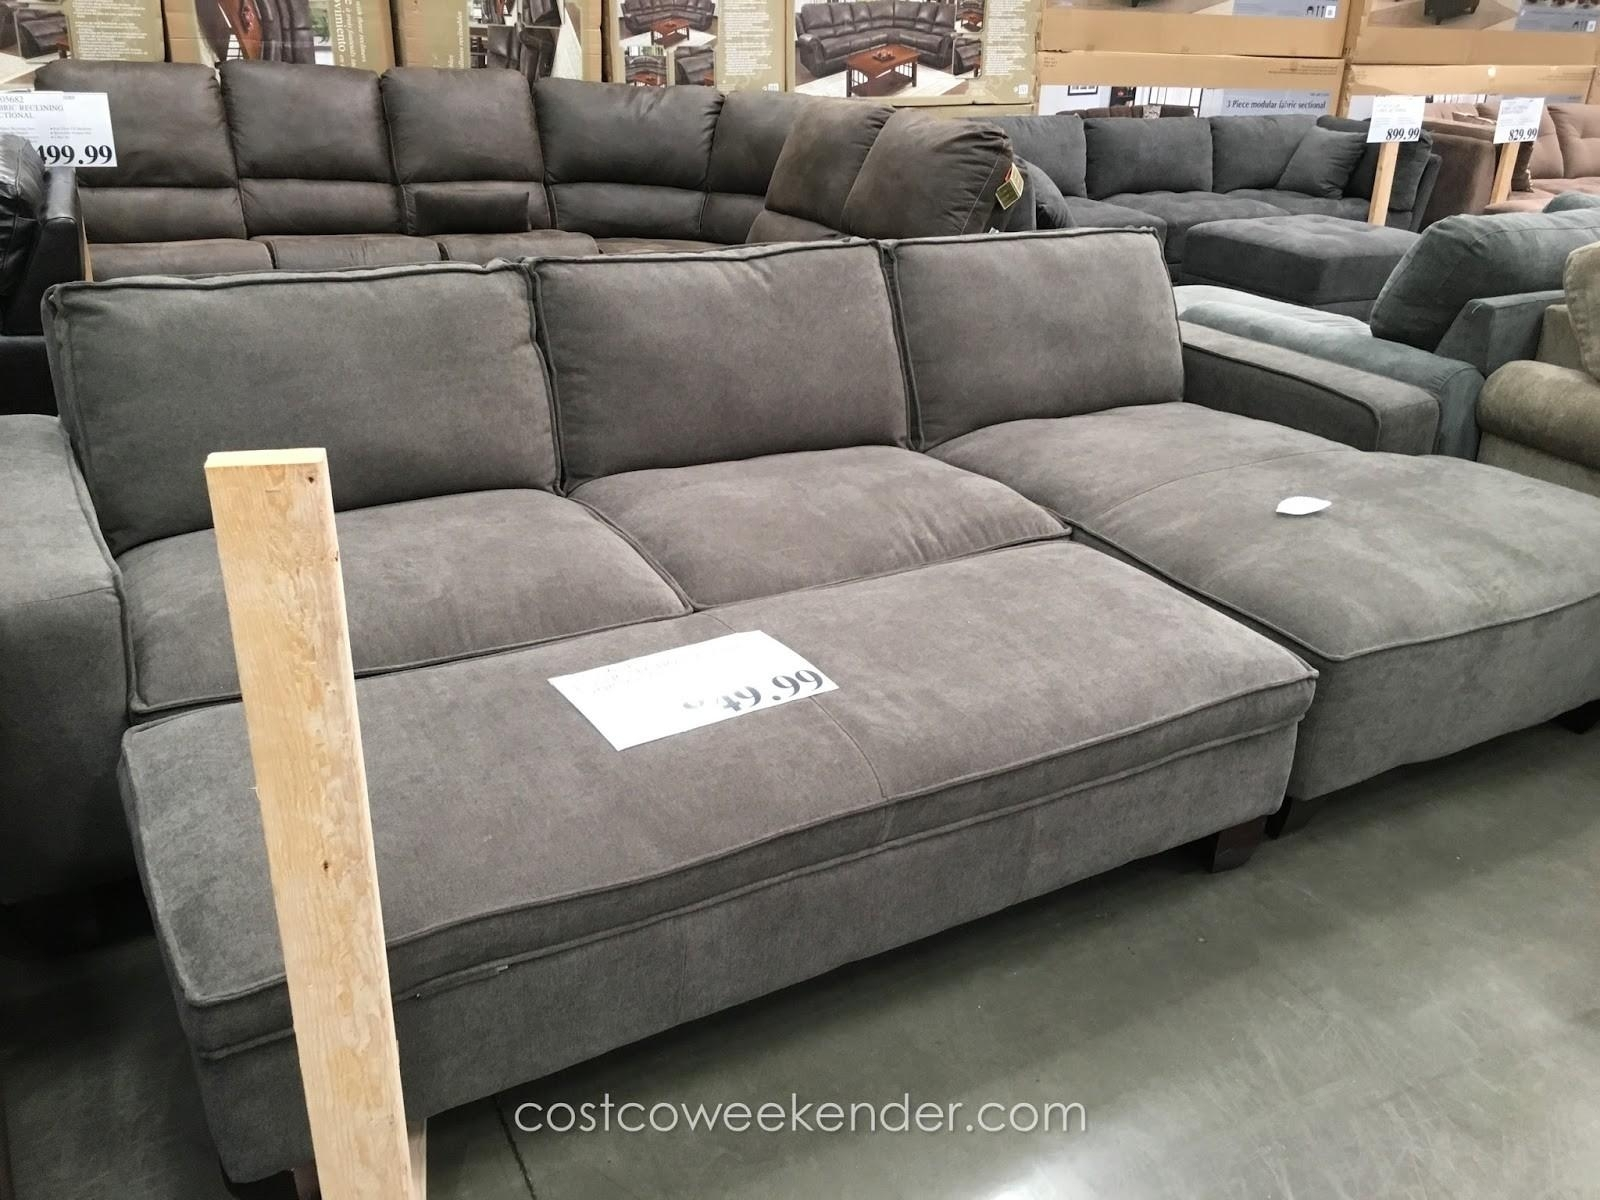 Furniture : Sectional Couch Costco Lovely Trends Costco Sectional In Virginia Beach Sectional Sofas (Image 5 of 10)